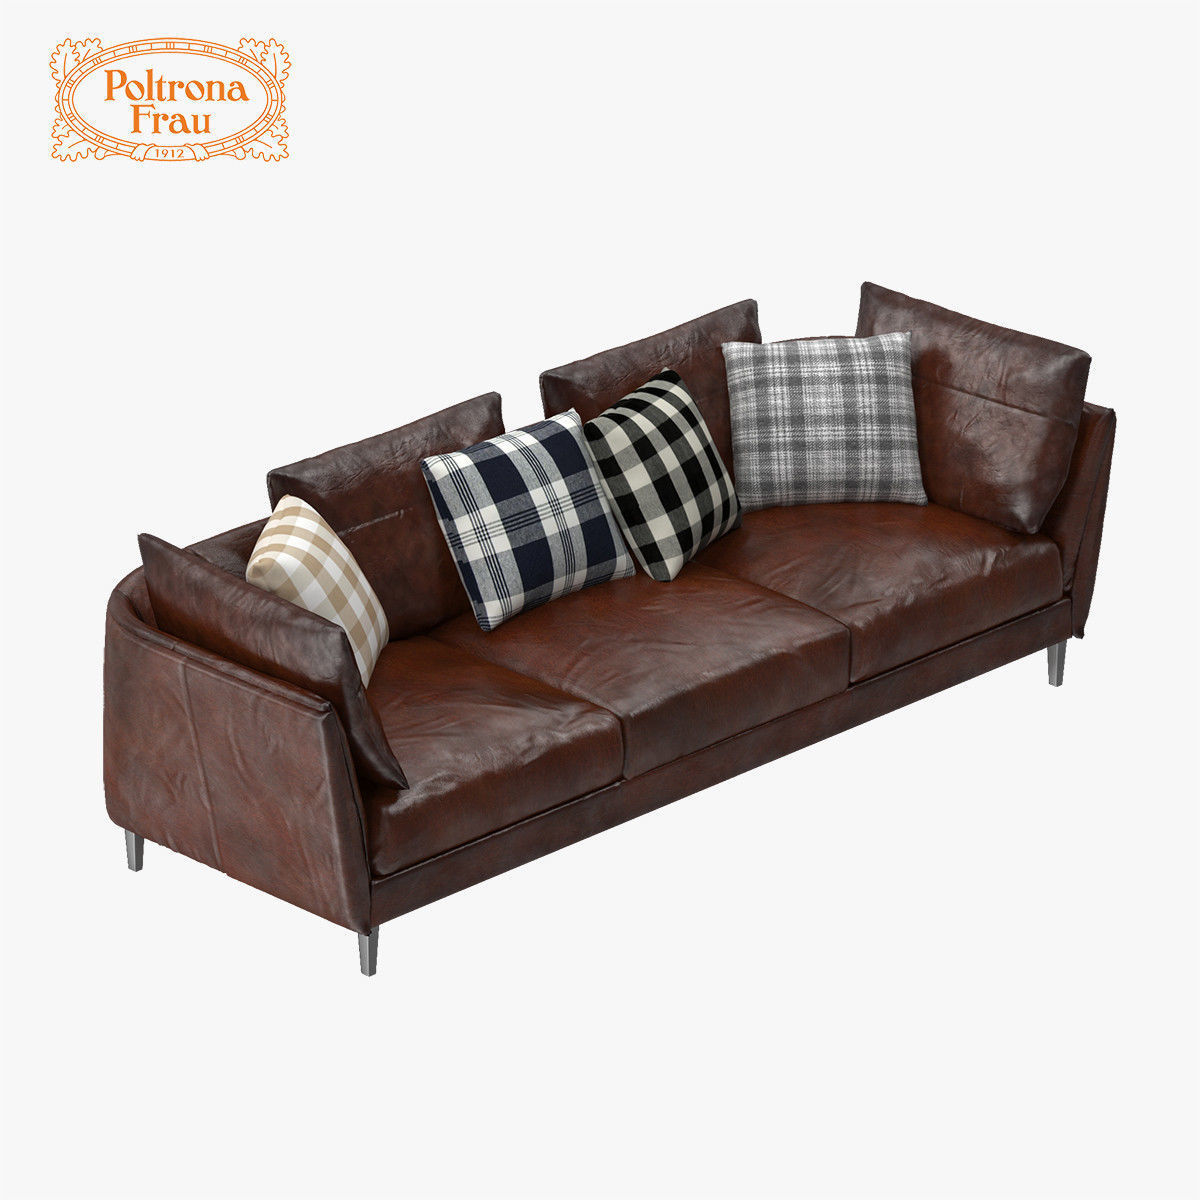 poltrona frau sofa review modern sectional sofas for small spaces bretagne 3d model max obj fbx mtl cgtrader